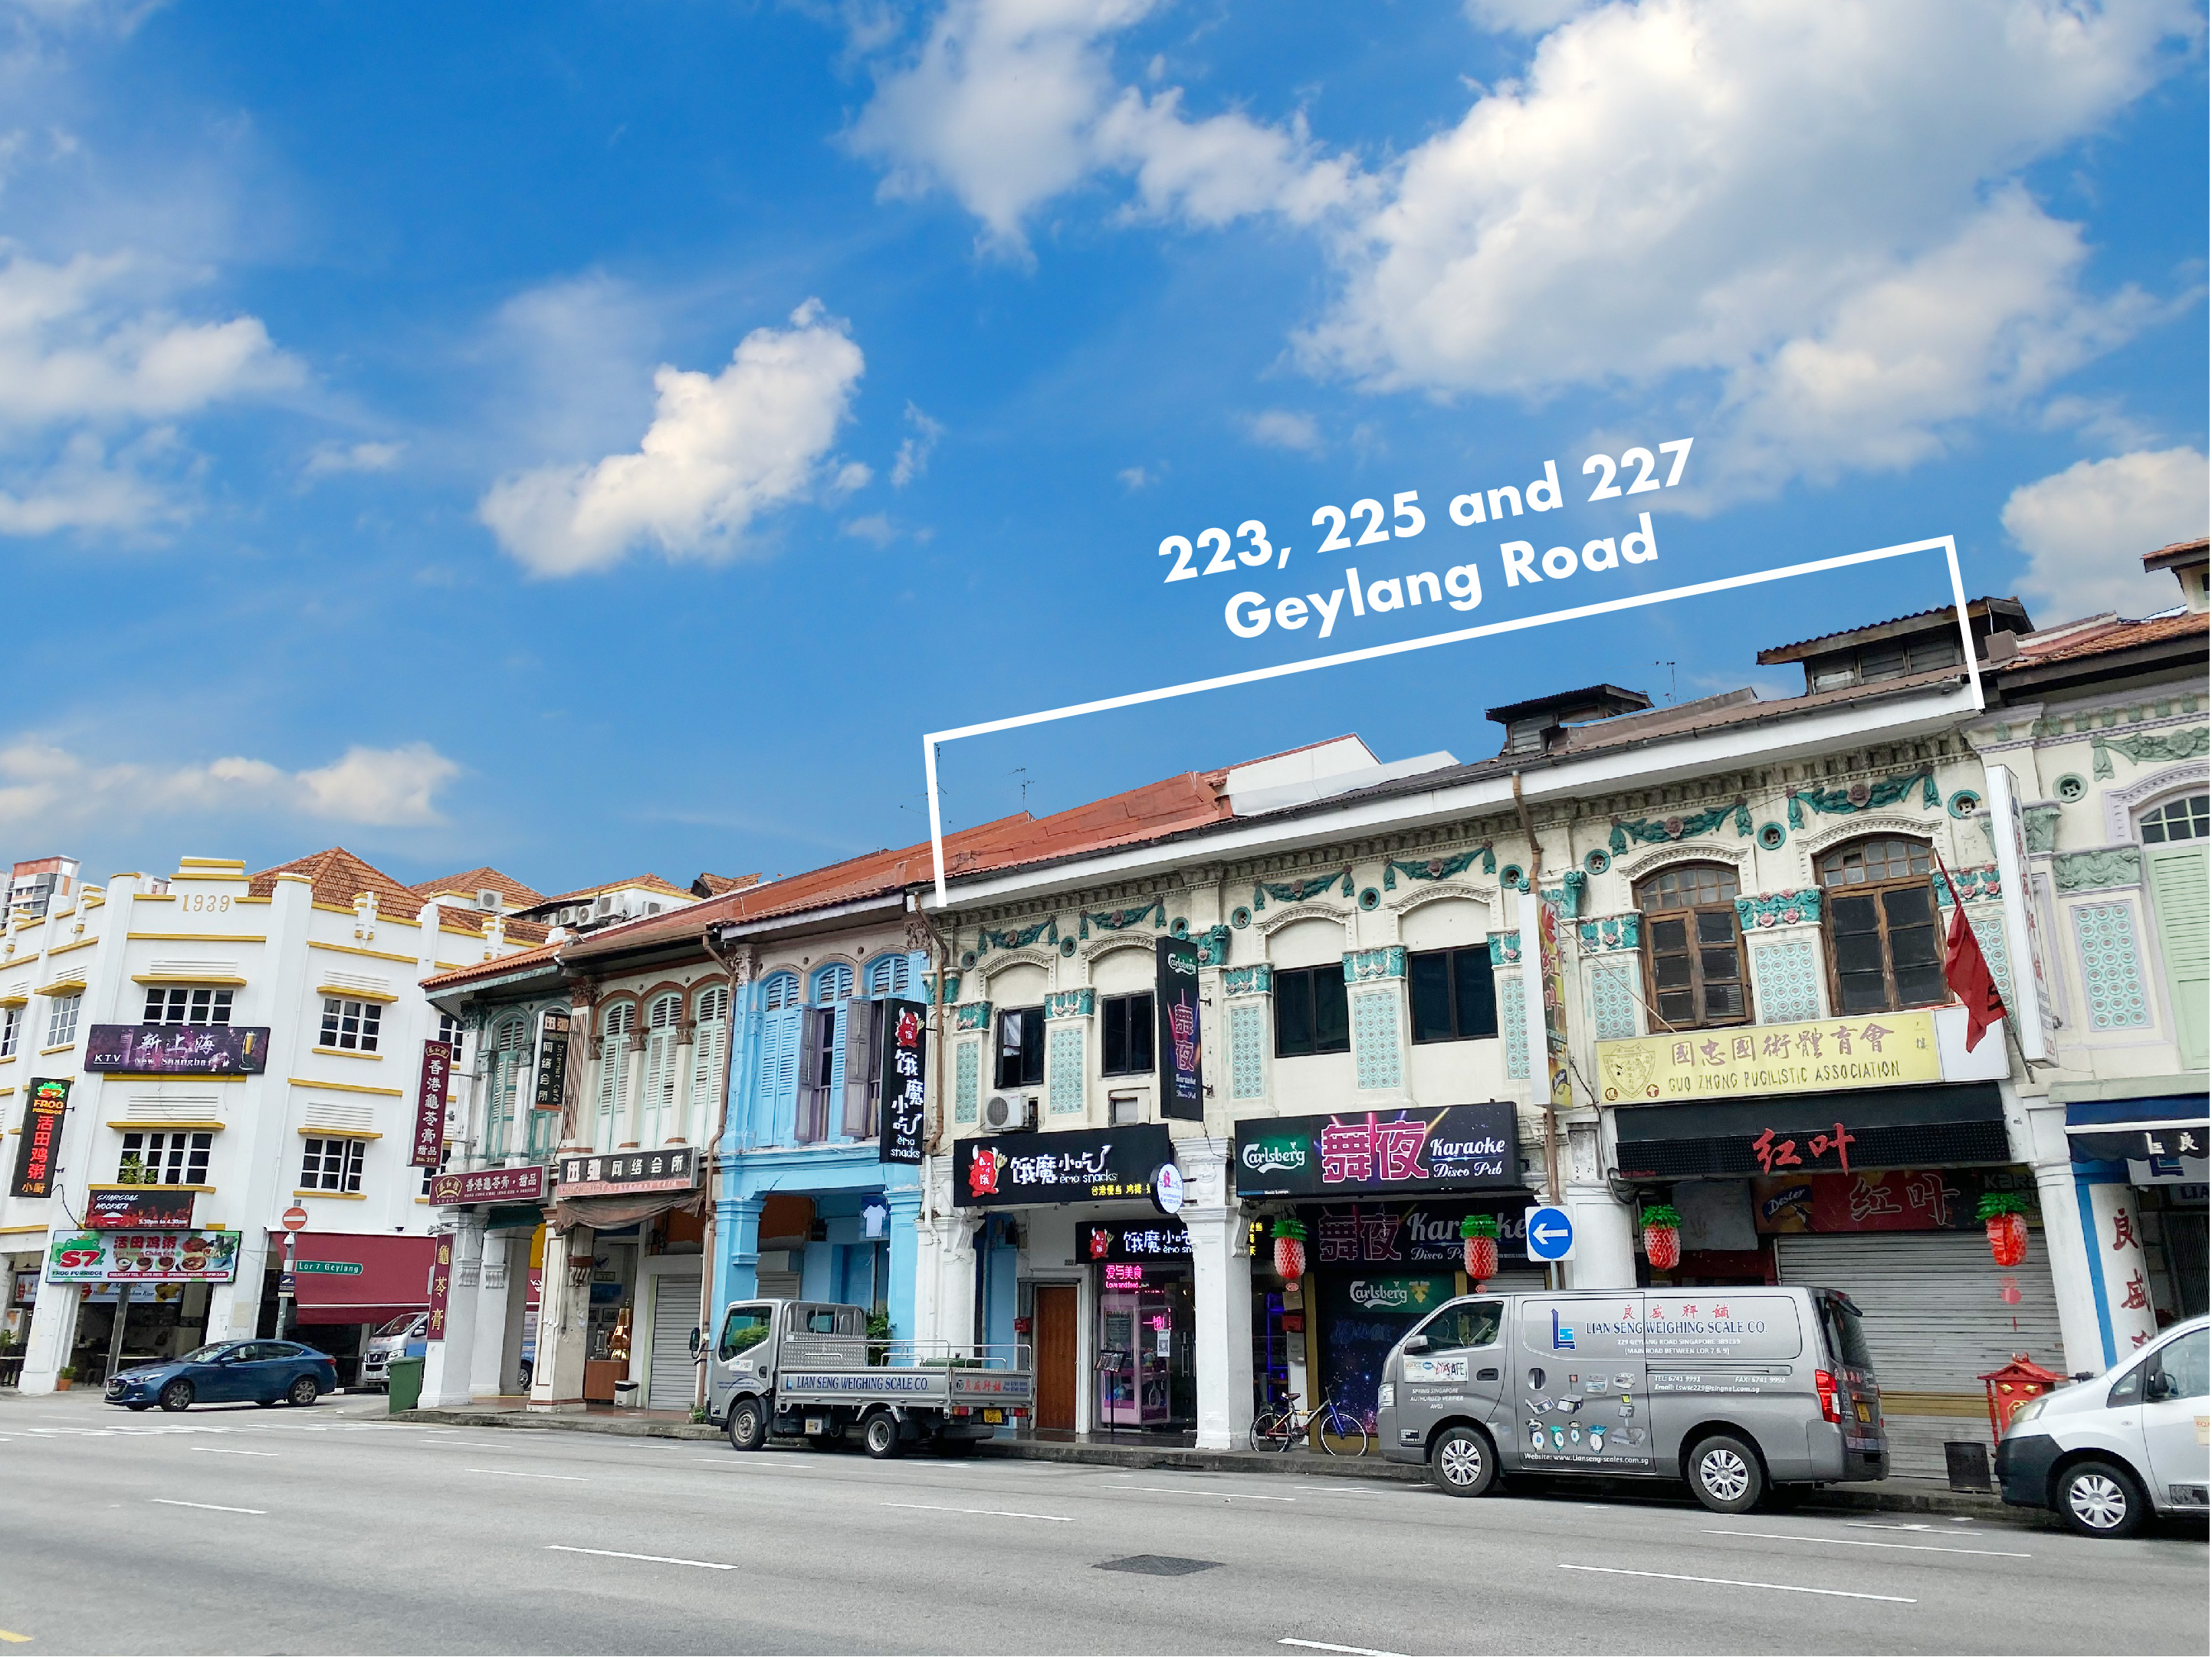 EDGEPROP SINGAPORE - The three shophouses at 223, 225 and 227 Geylang Road are to be sold collectively from $12 million (Credit: CBRE)